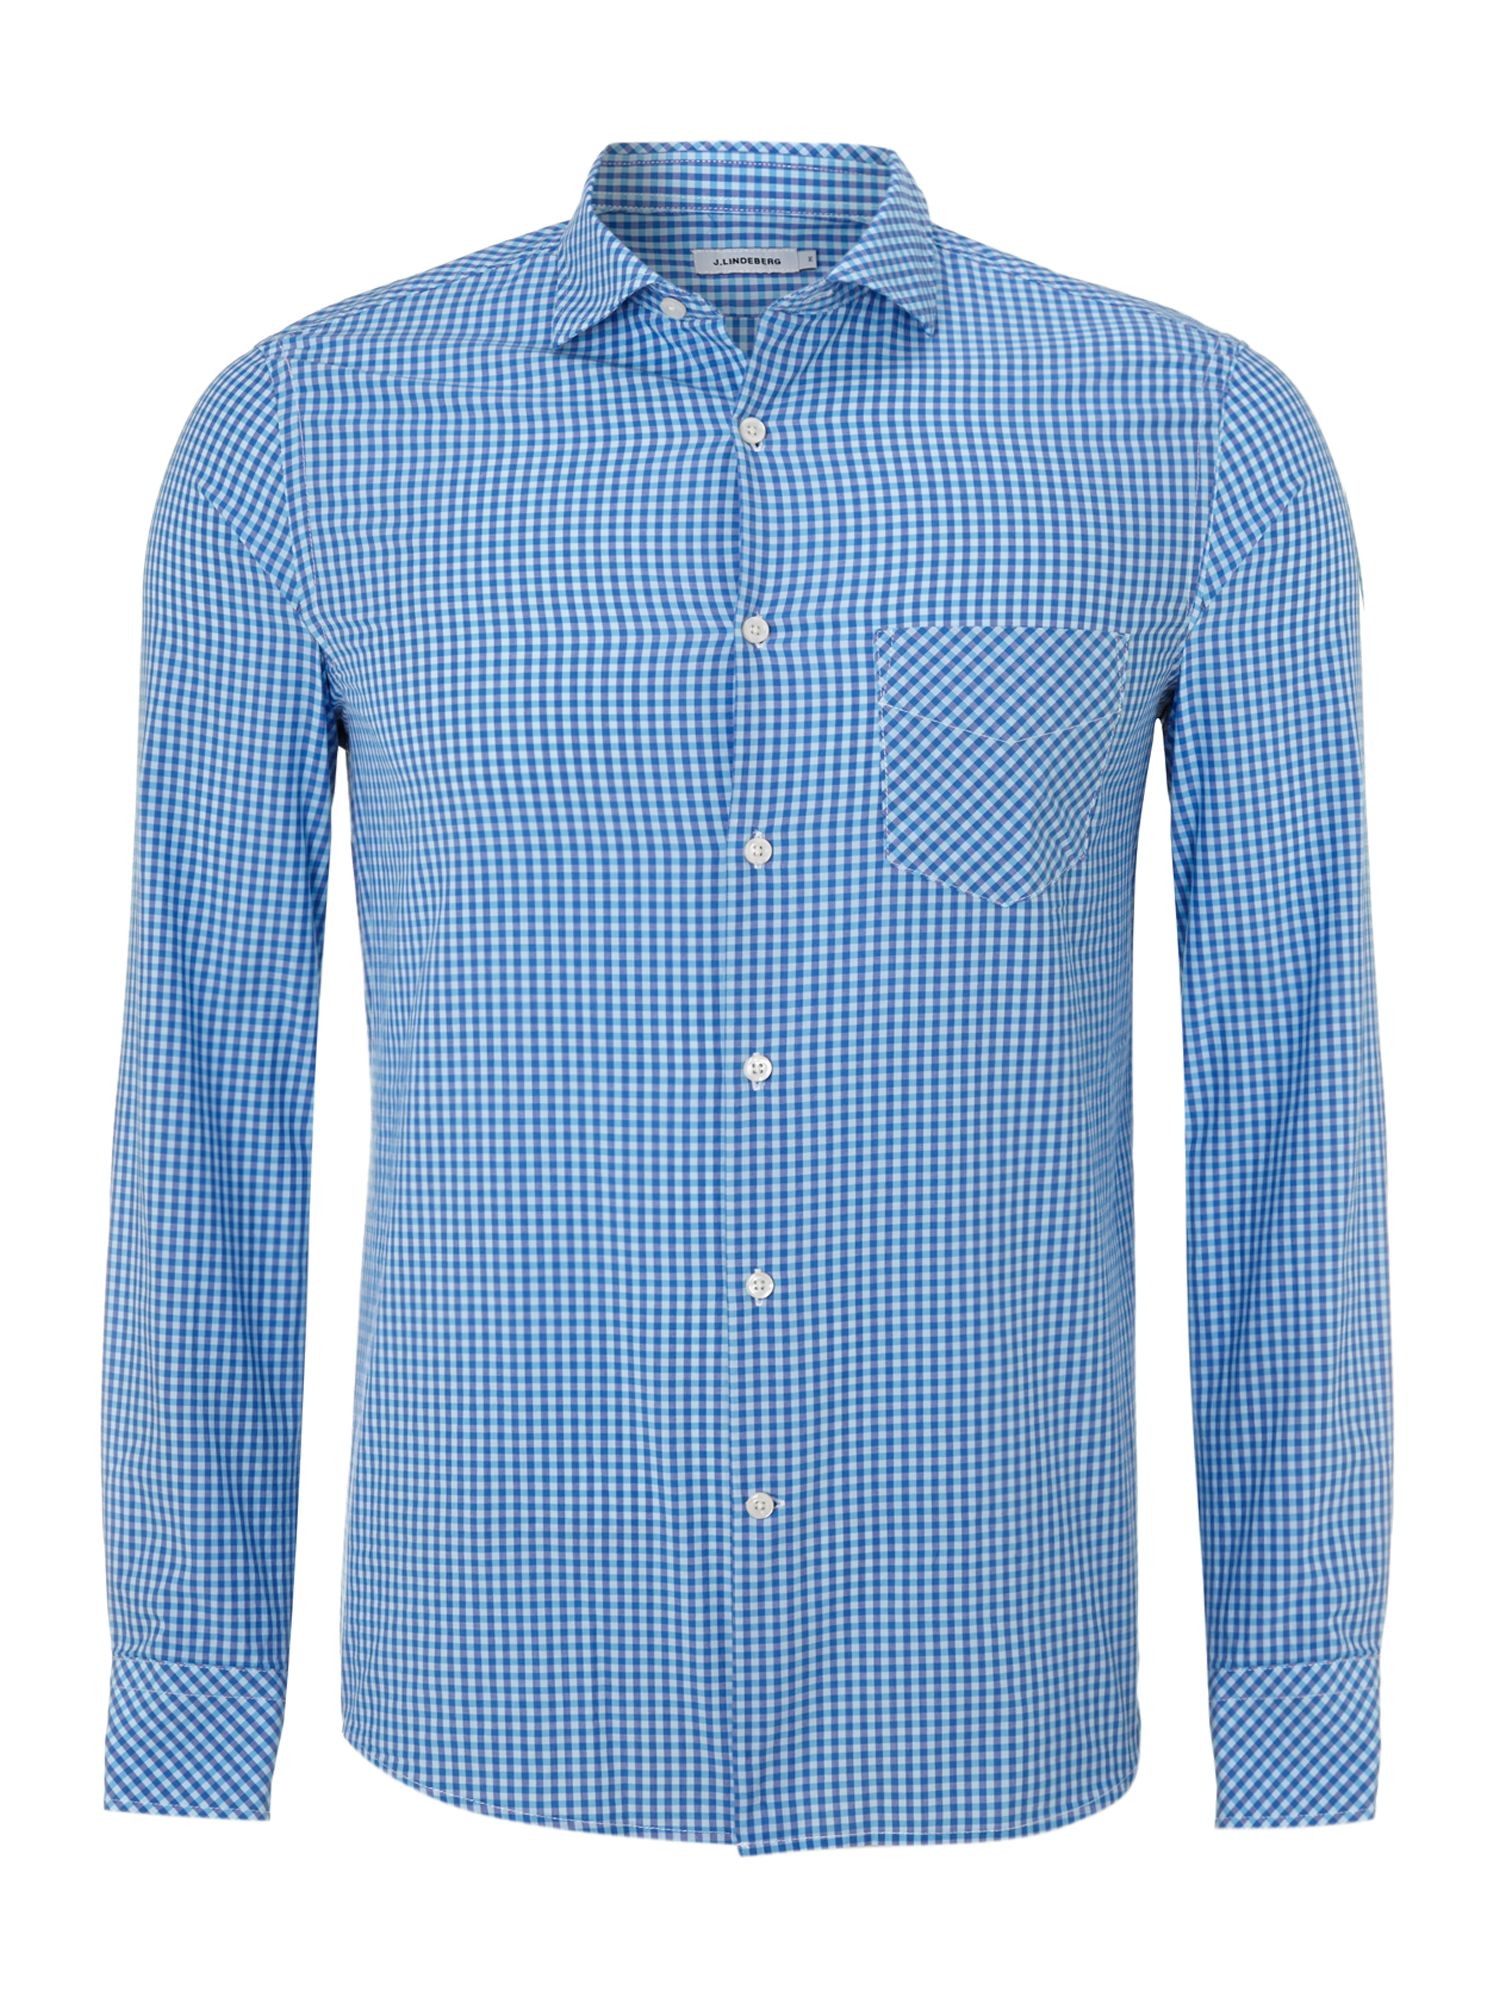 Bright gingham poplin shirt